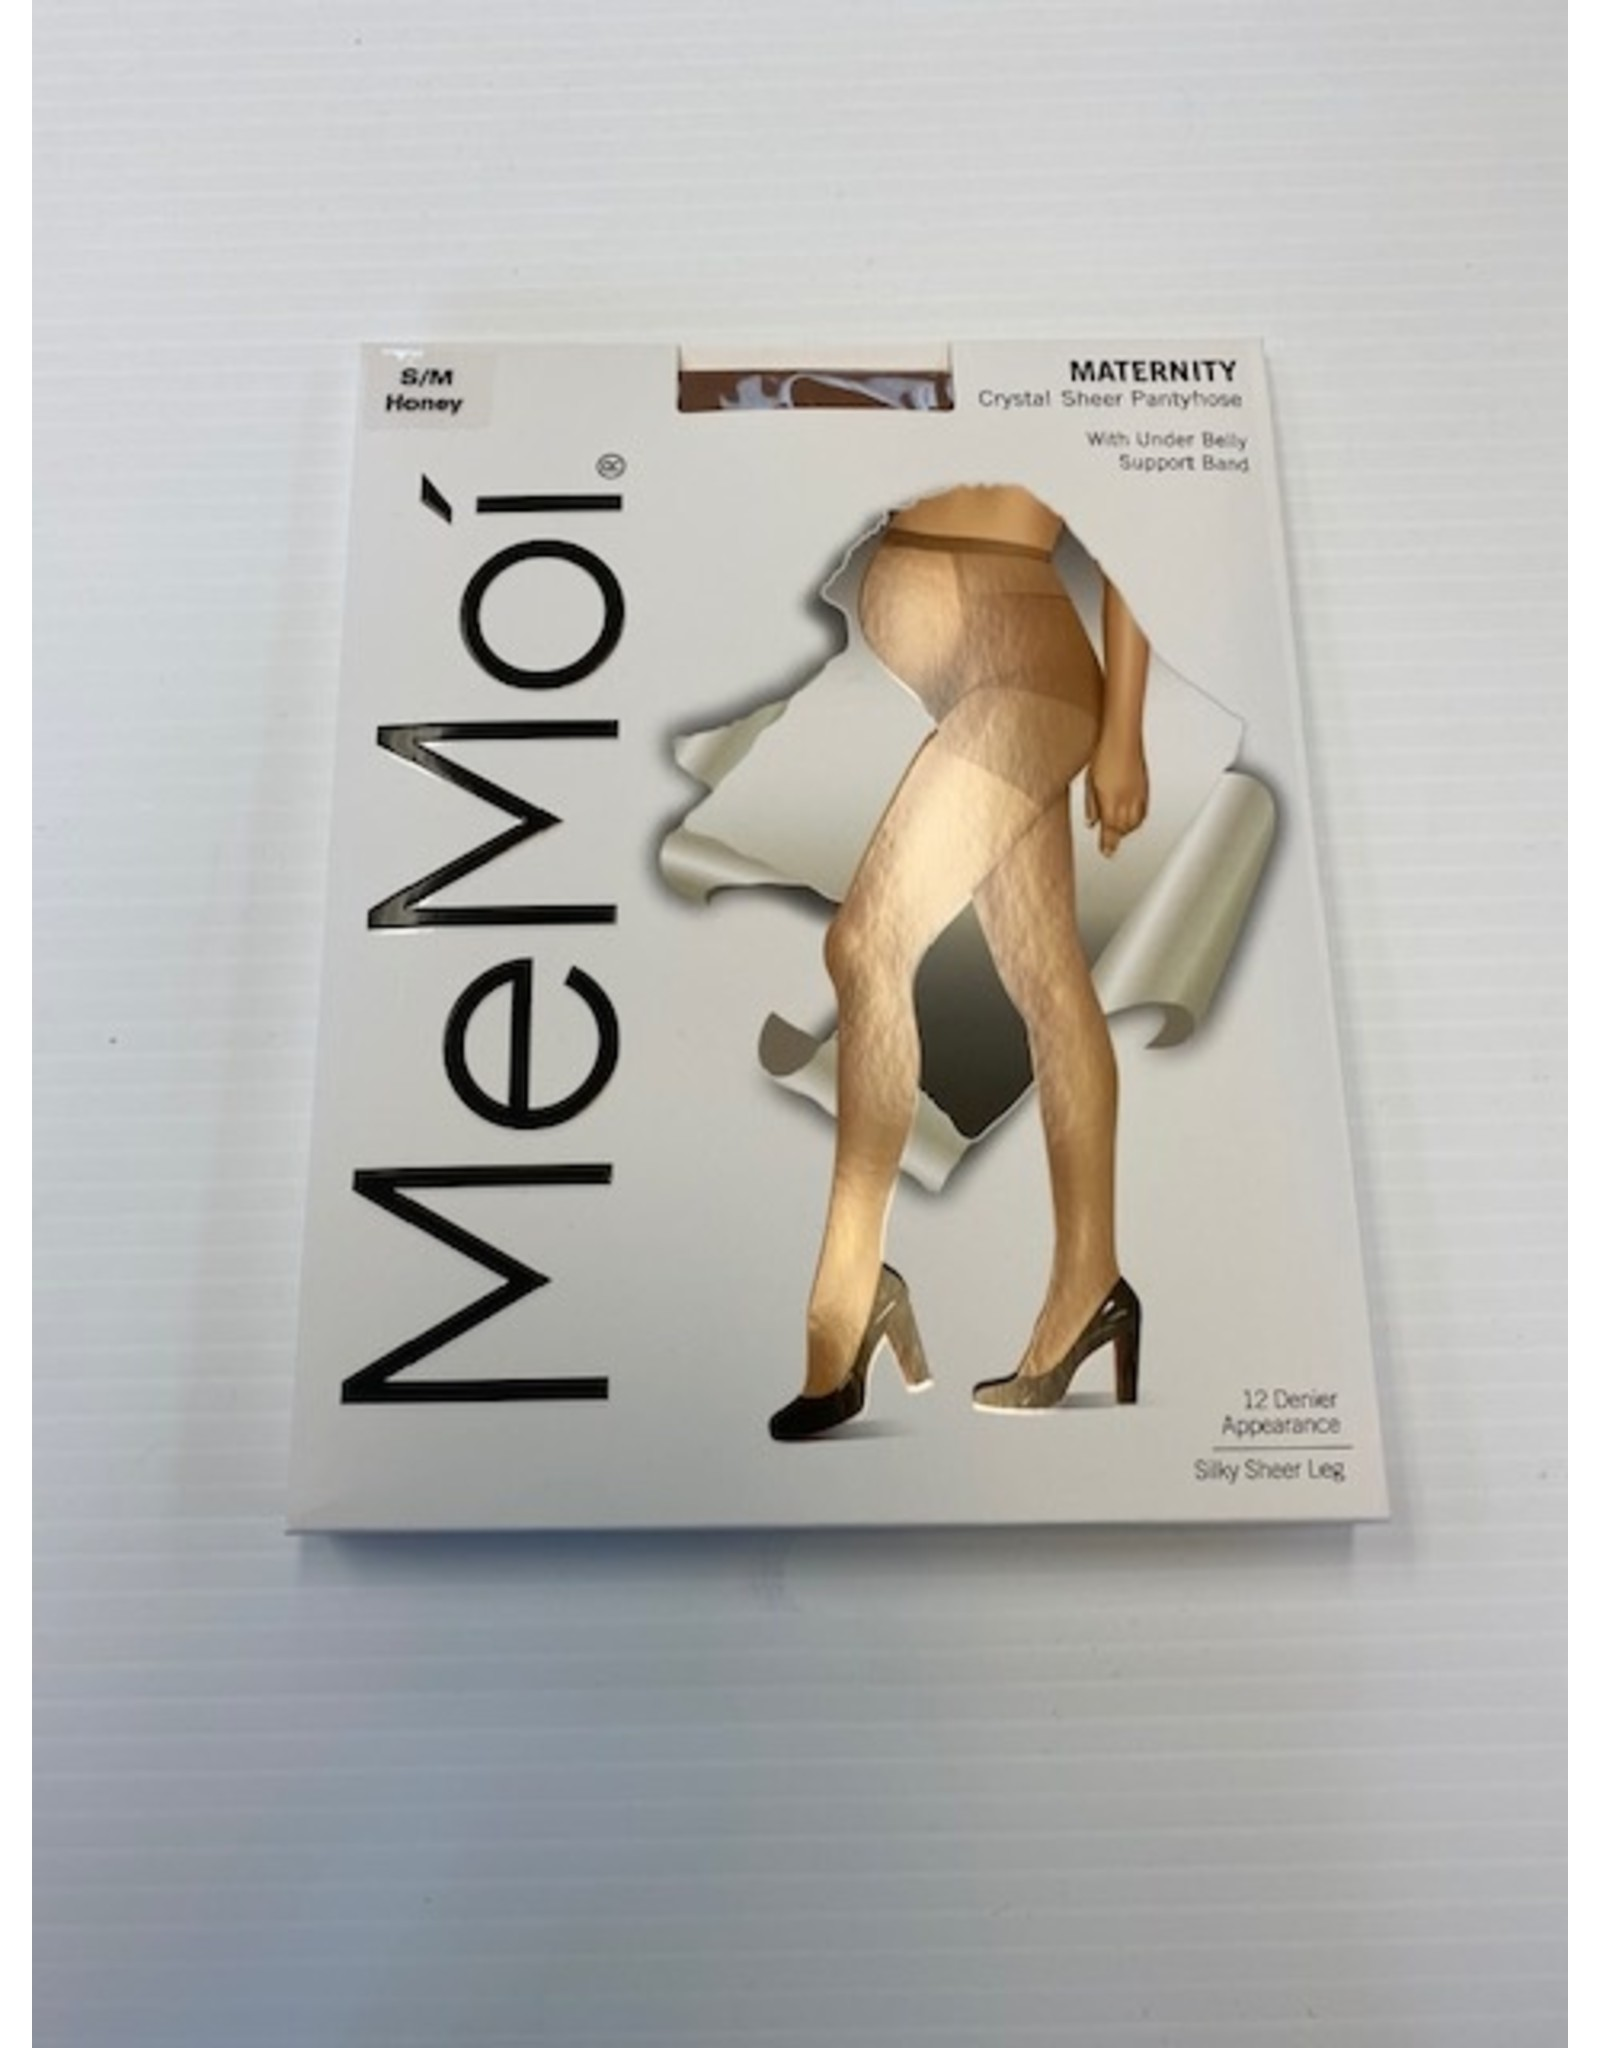 Memoi Memoi Women's Maternity Crystal Sheer Pantyhose with Under Belly Support Band 12 Denier MA-401